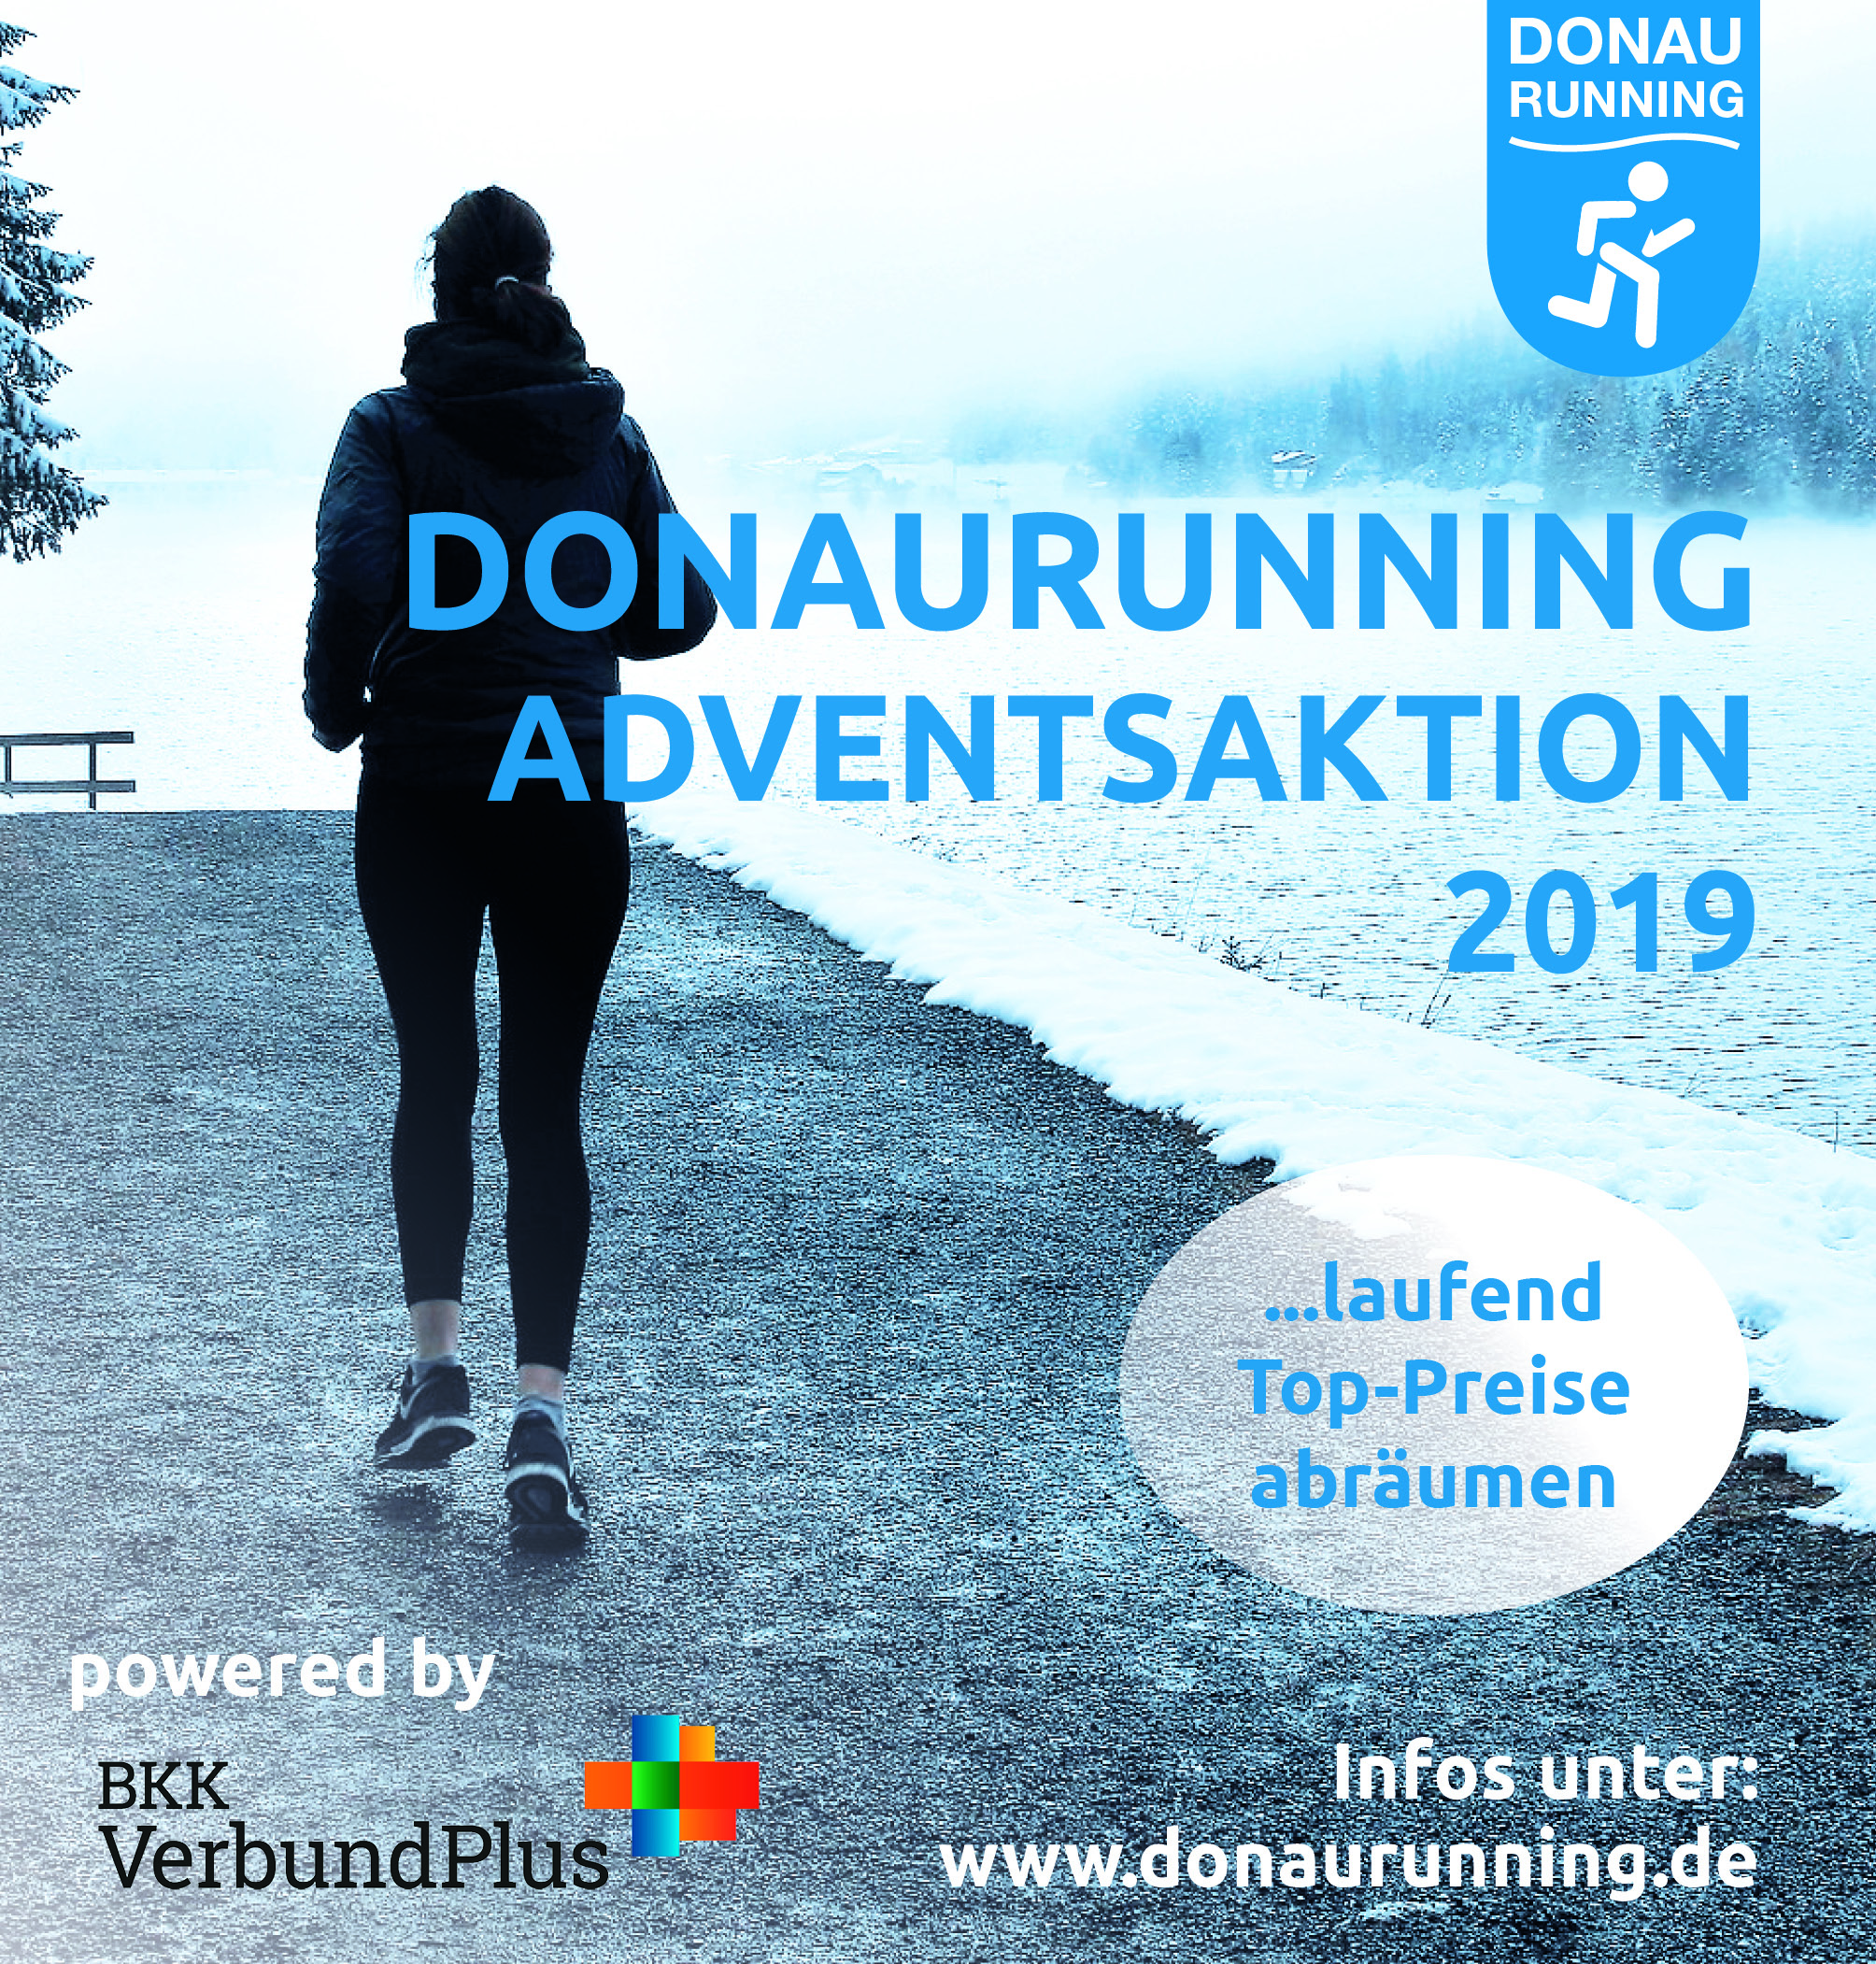 Adventsaktion powered by BKK VerbundPlus: Auswertung Woche 4